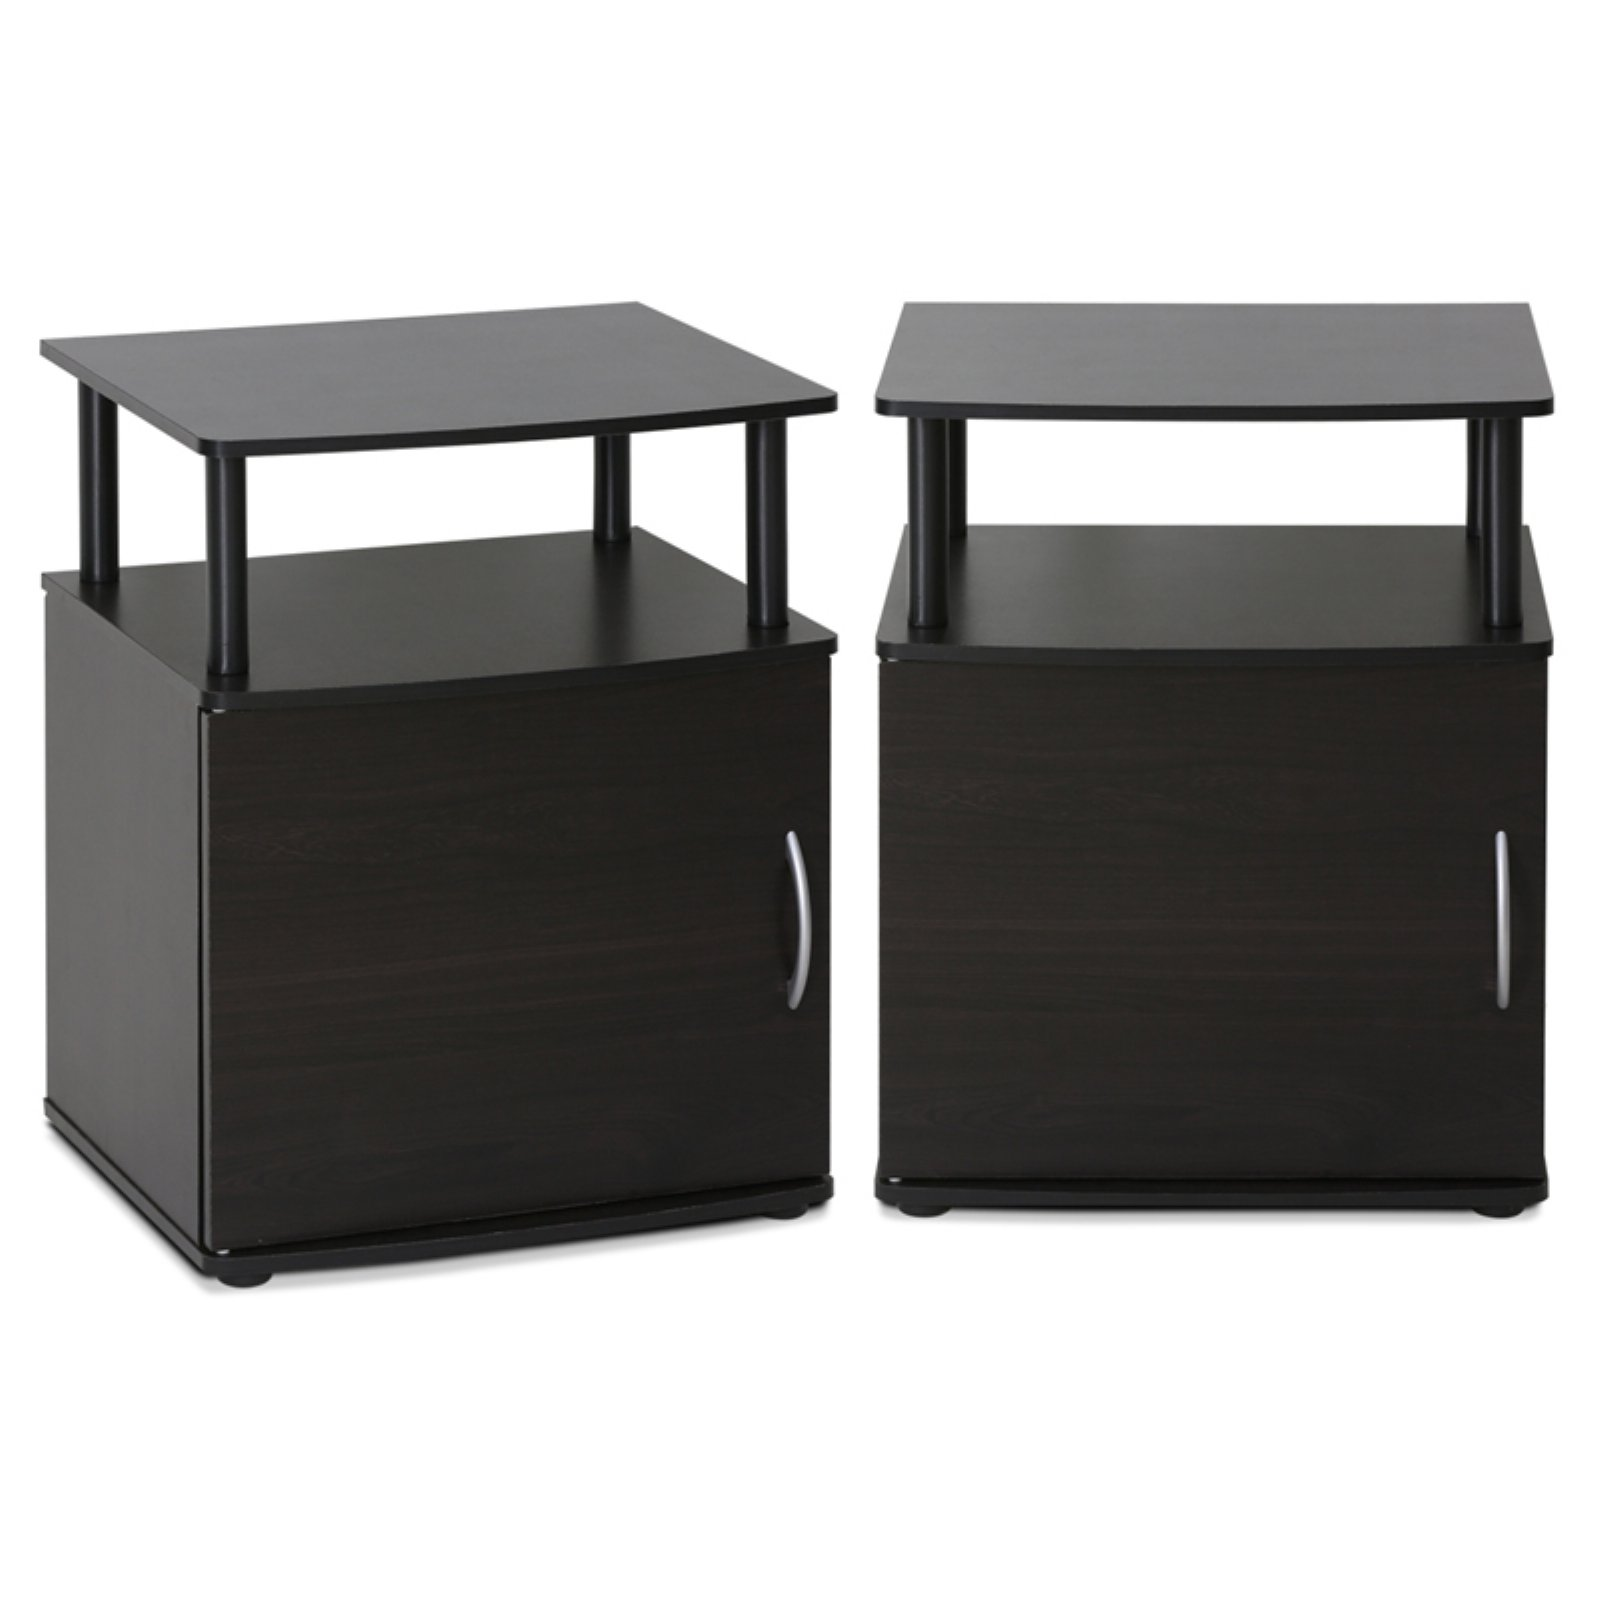 Furinno JAYA Utility Design End Table, Set of 2 by Furinno